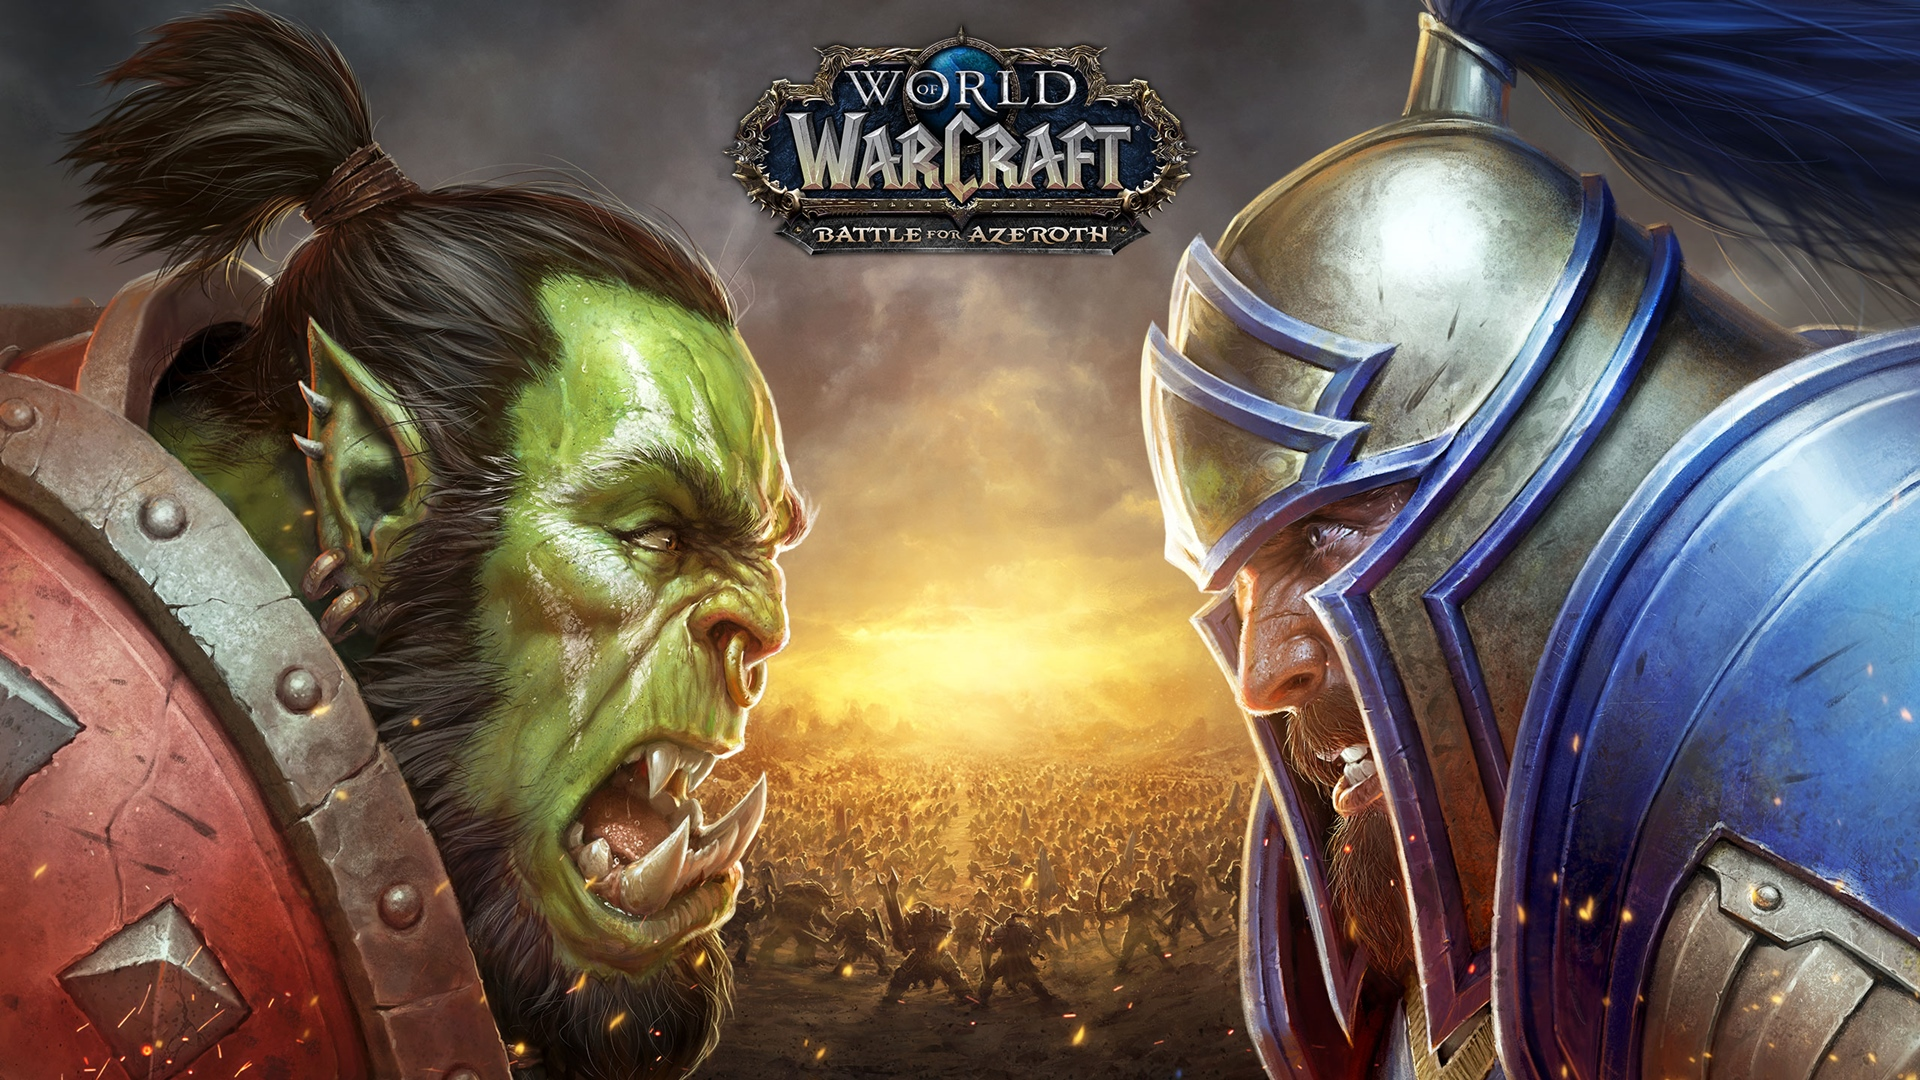 https://www.micromania.fr/world-of-warcraft-battle-for-azeroth-collector-edition-87237.html